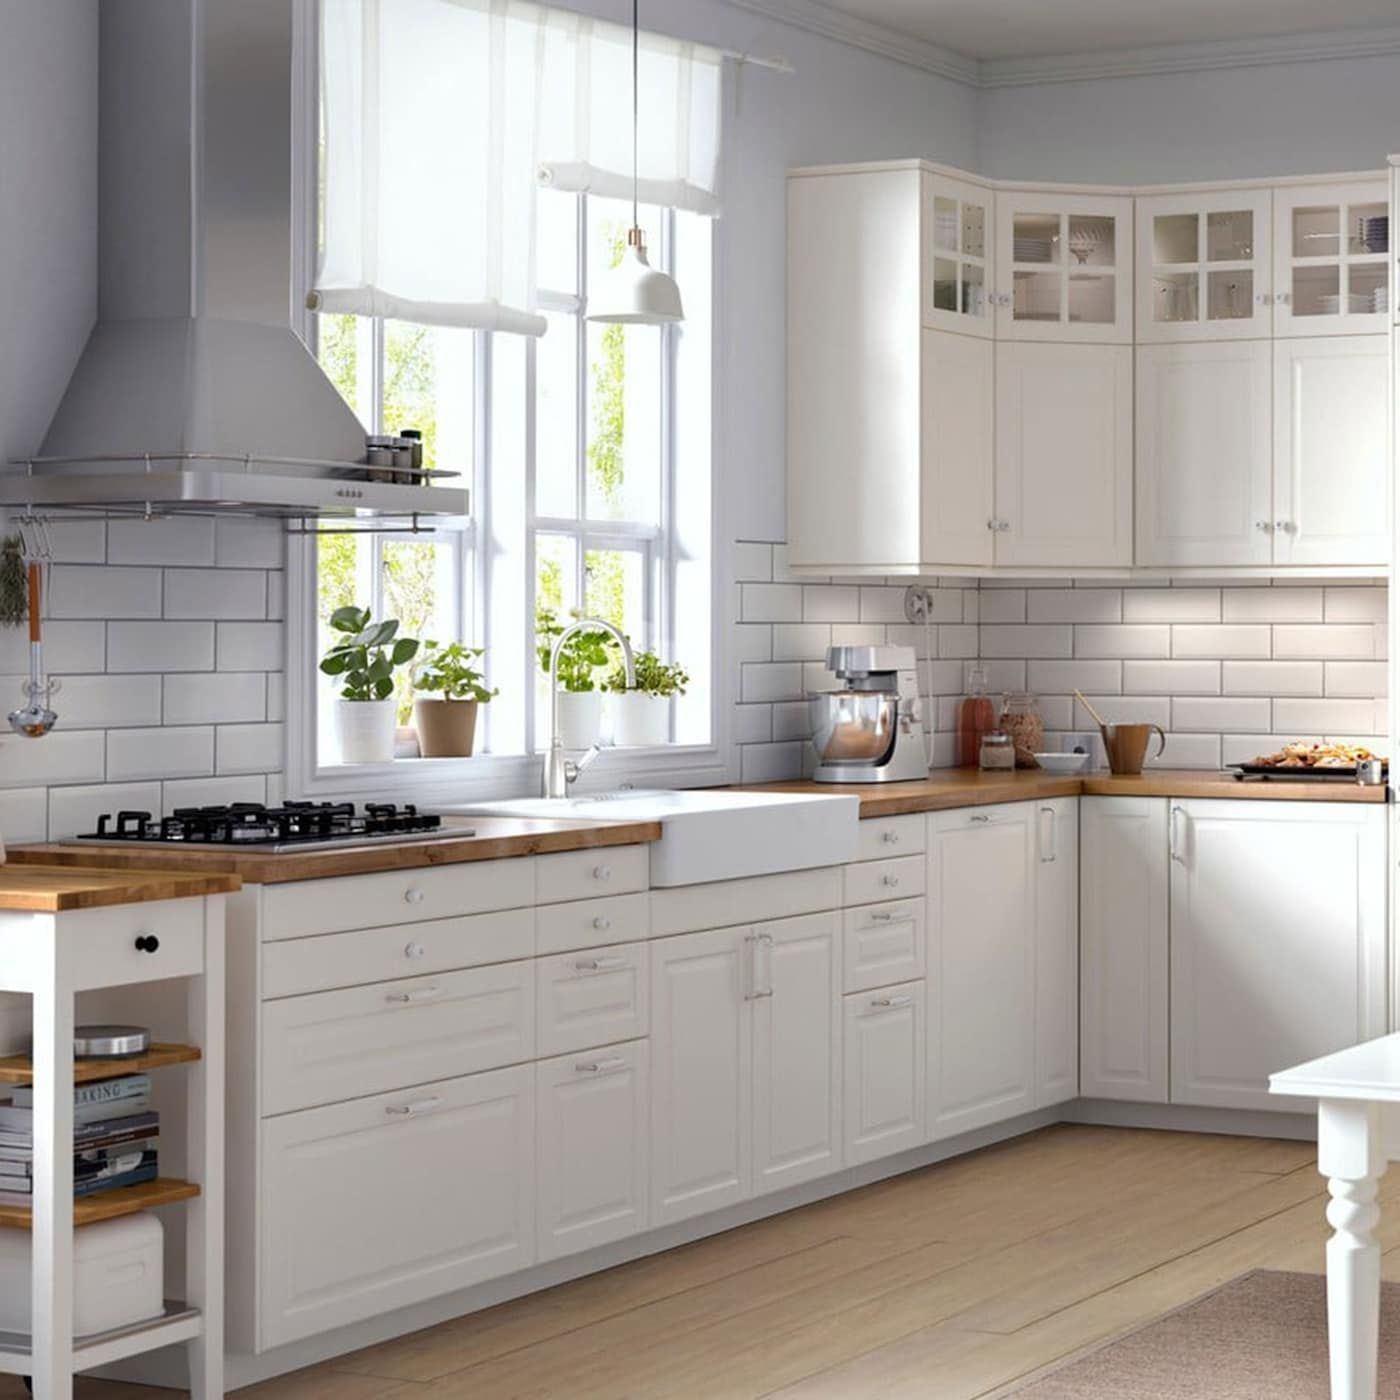 43 Extremely Creative Small Kitchen Design Ideas: Ikea Kitchen Design, Kitchen